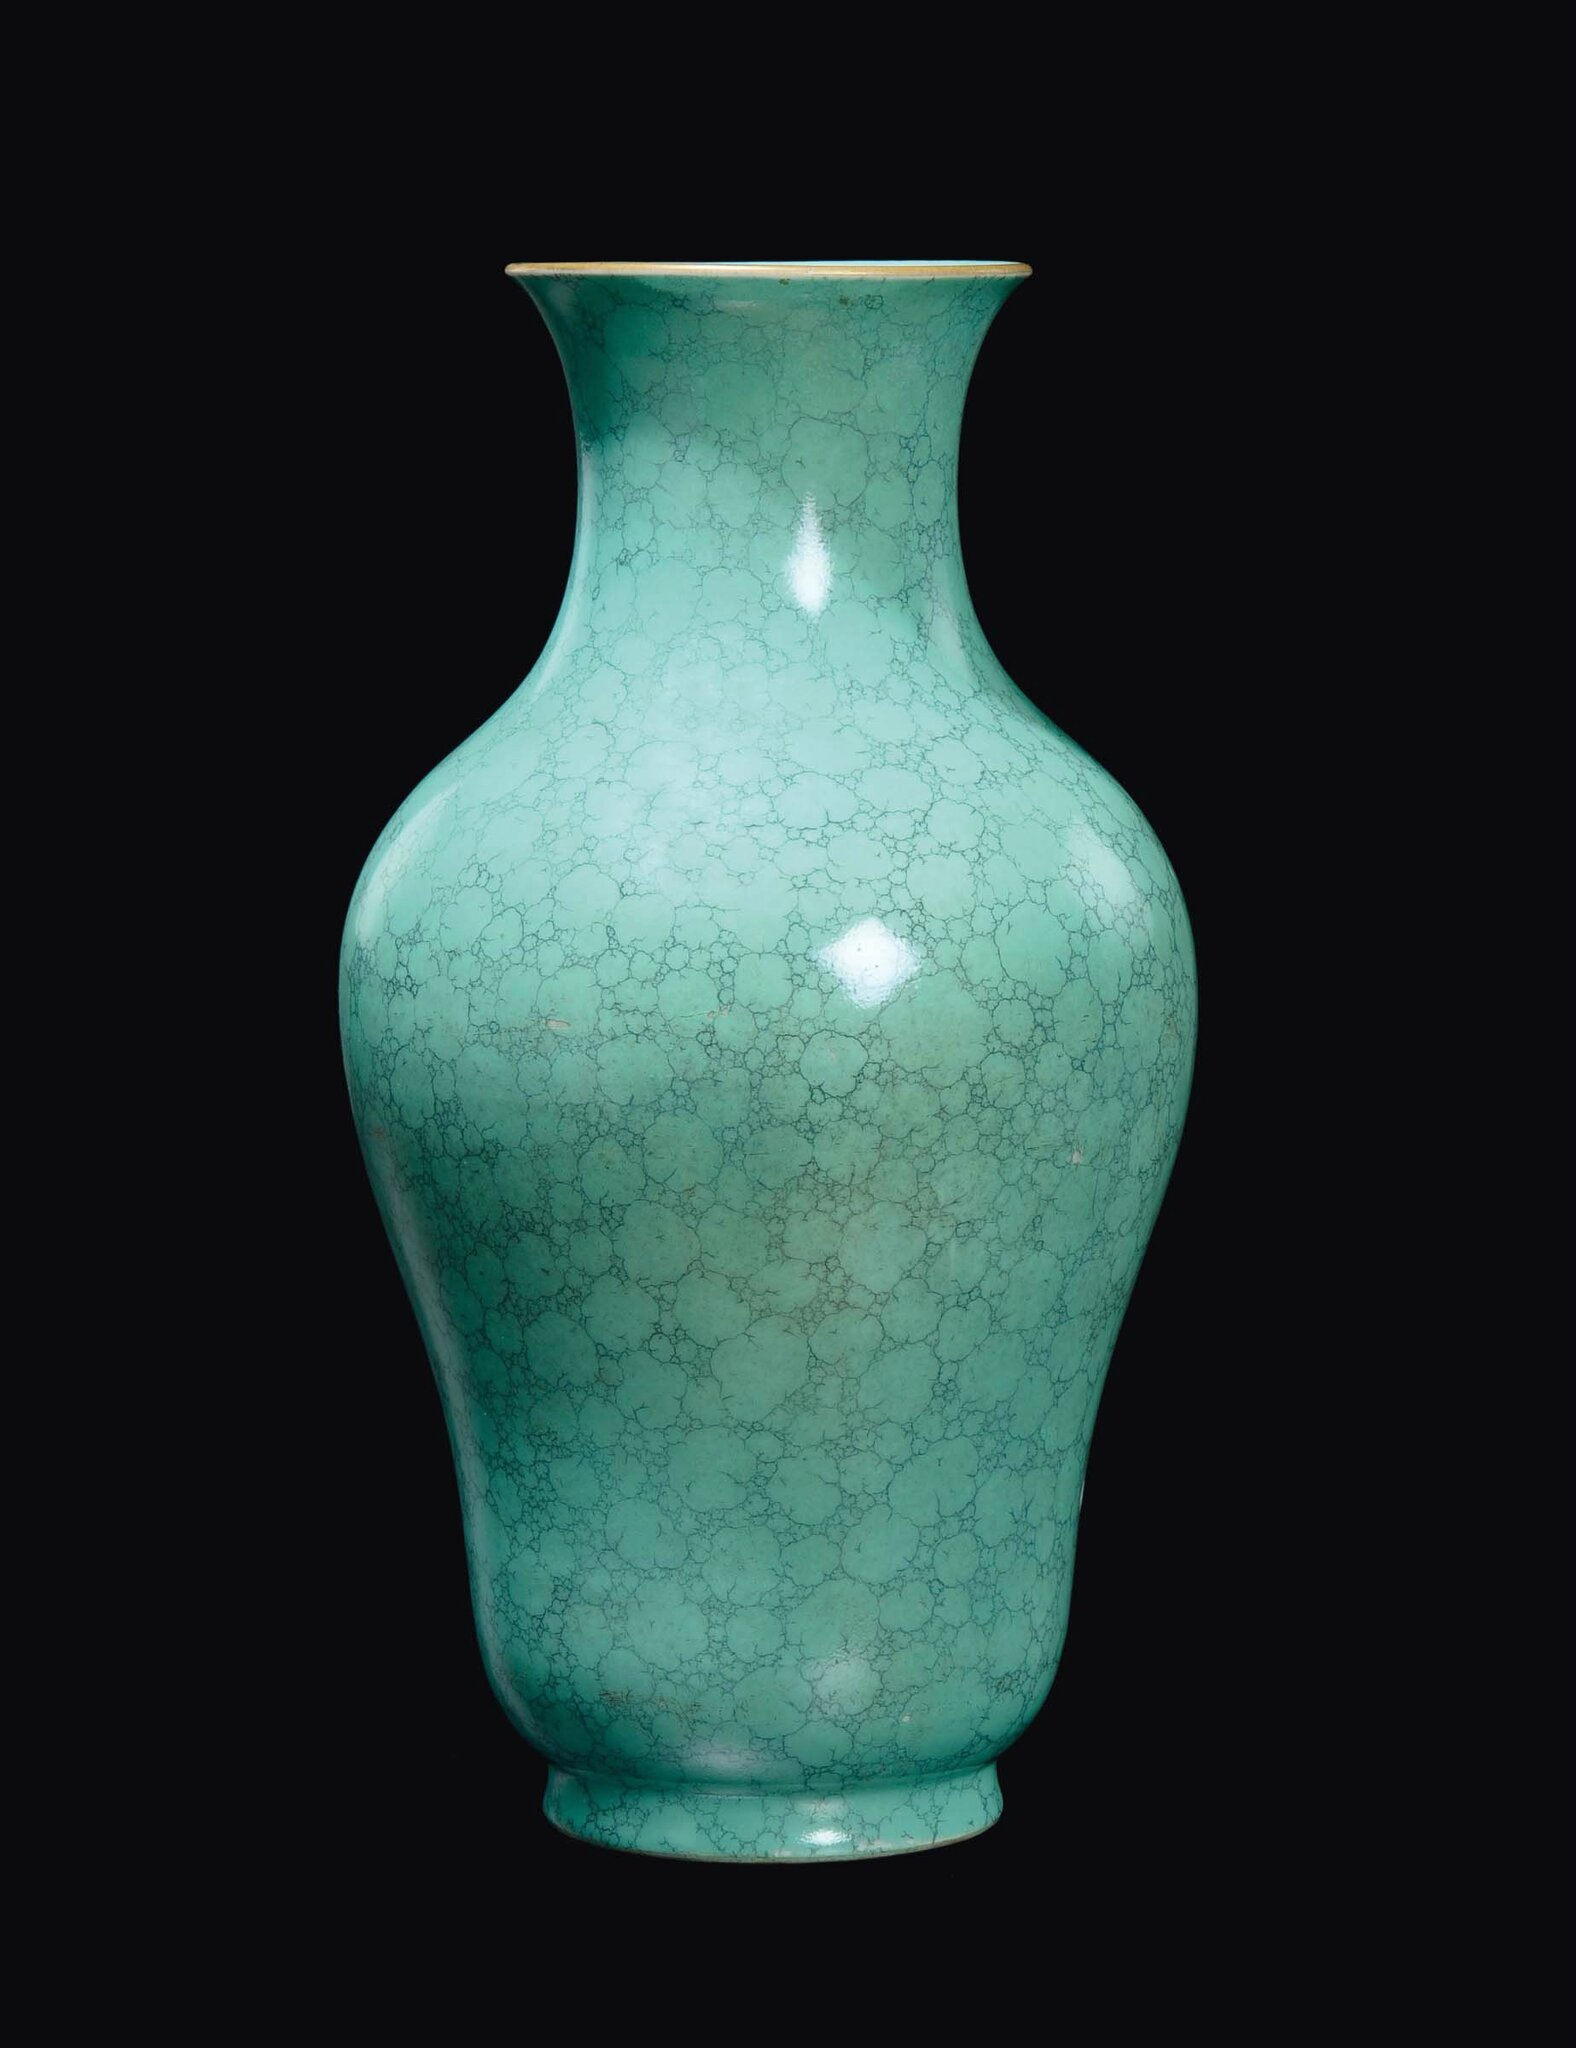 A turquoise enamelled porcelain vase, China, Qing Dynasty, Qianlong Mark and Period (1736-1795)